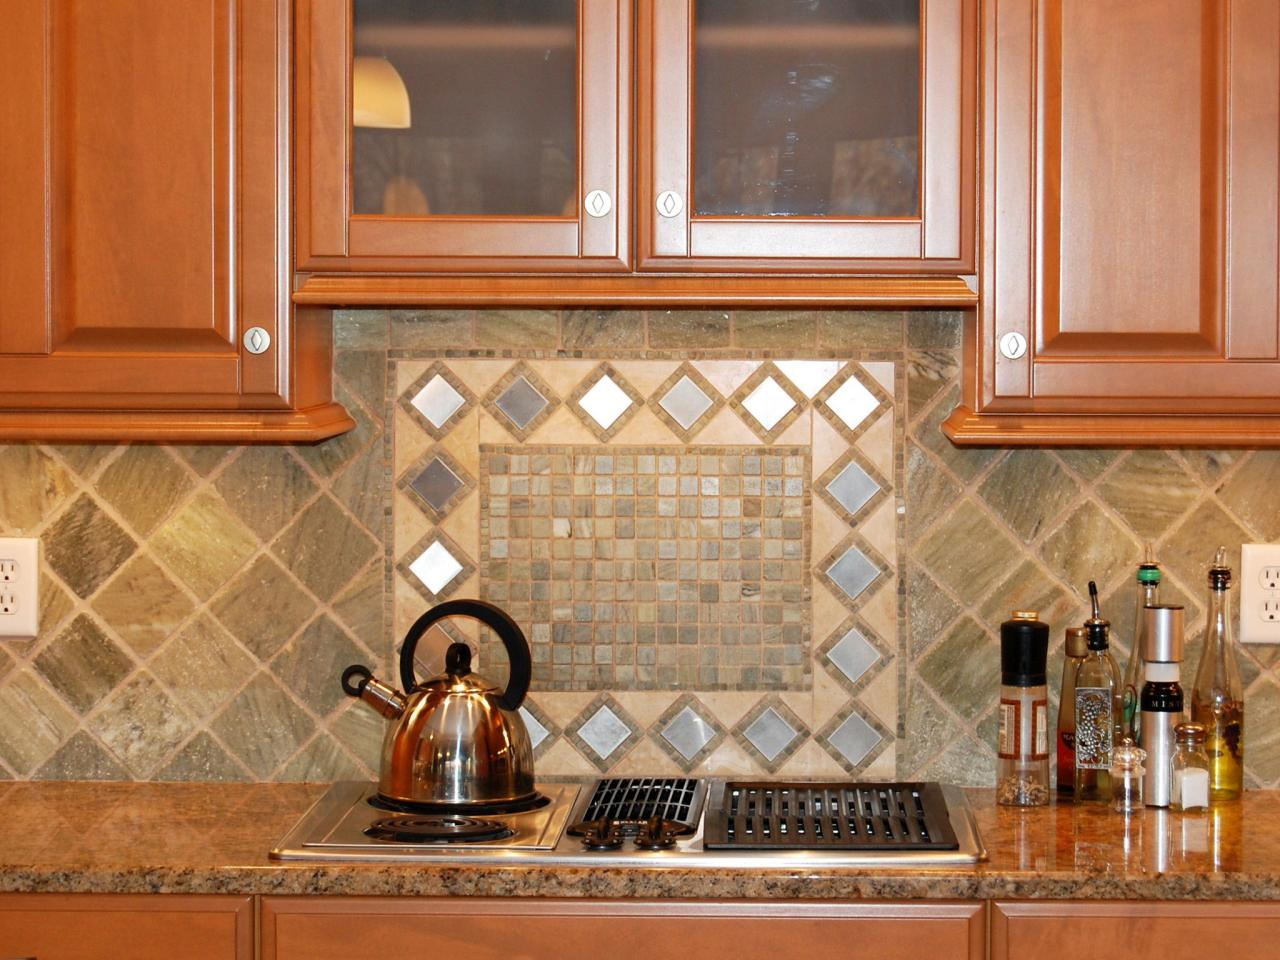 Backsplash Design kitchen backsplash design ideas | hgtv